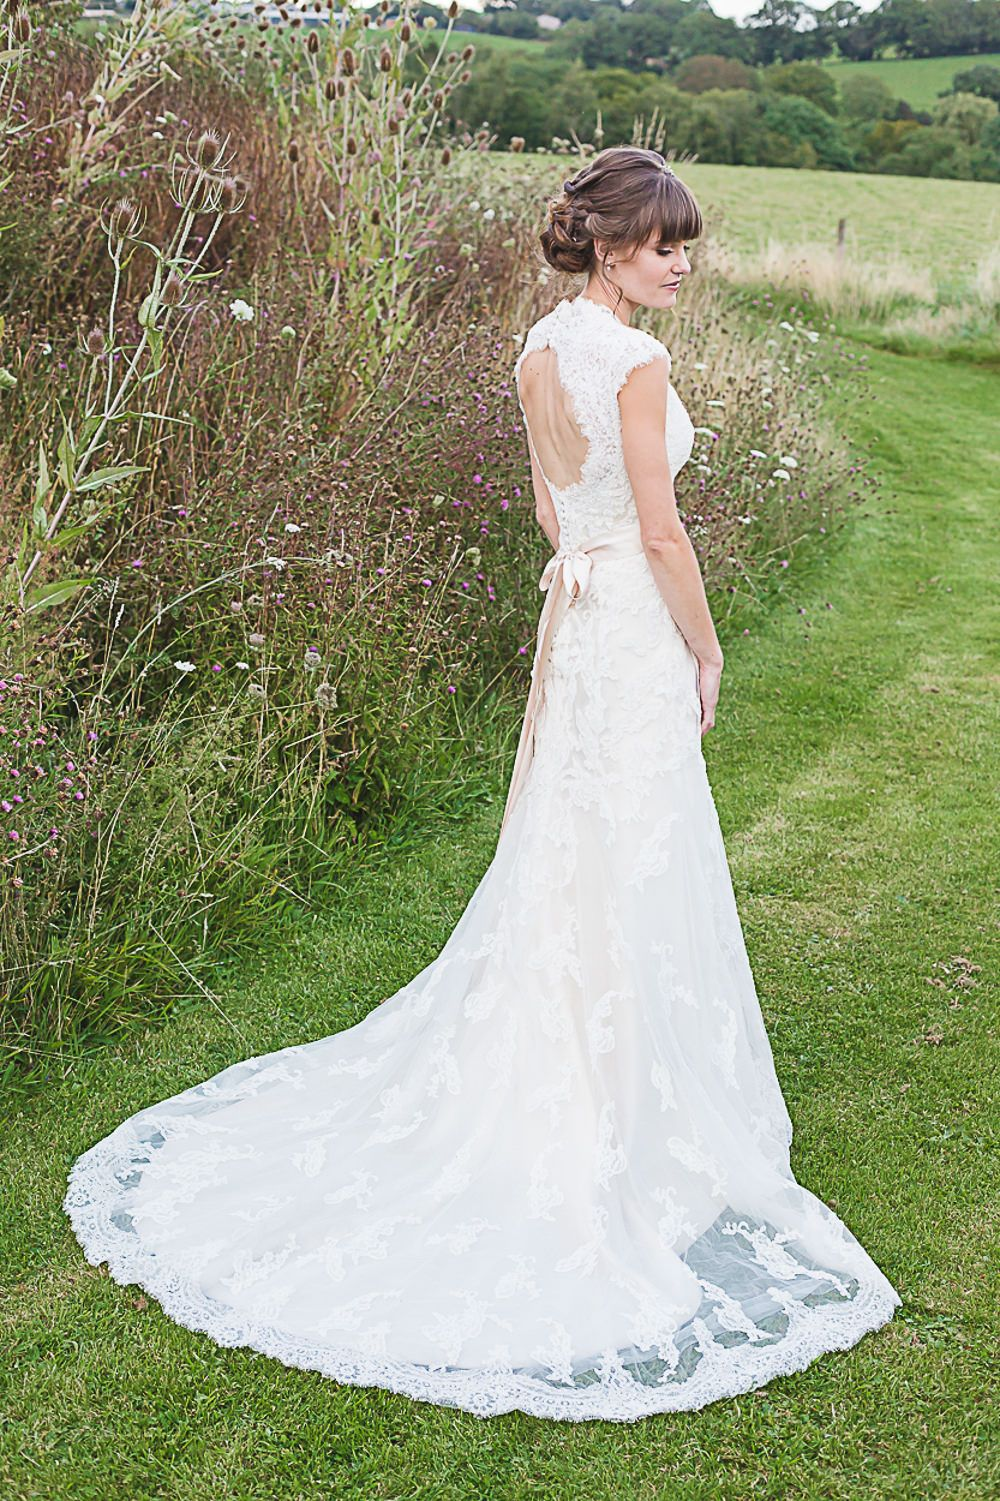 Maggie Sottero Lace Bronwyn Gown Rachel Simpson Mimosa Bridal Shoes For A Rustic Wedding At The Barn At Brynich In Wales Wedding Dresses Bridal Gowns Maggie Sottero Lace [ 1501 x 1000 Pixel ]